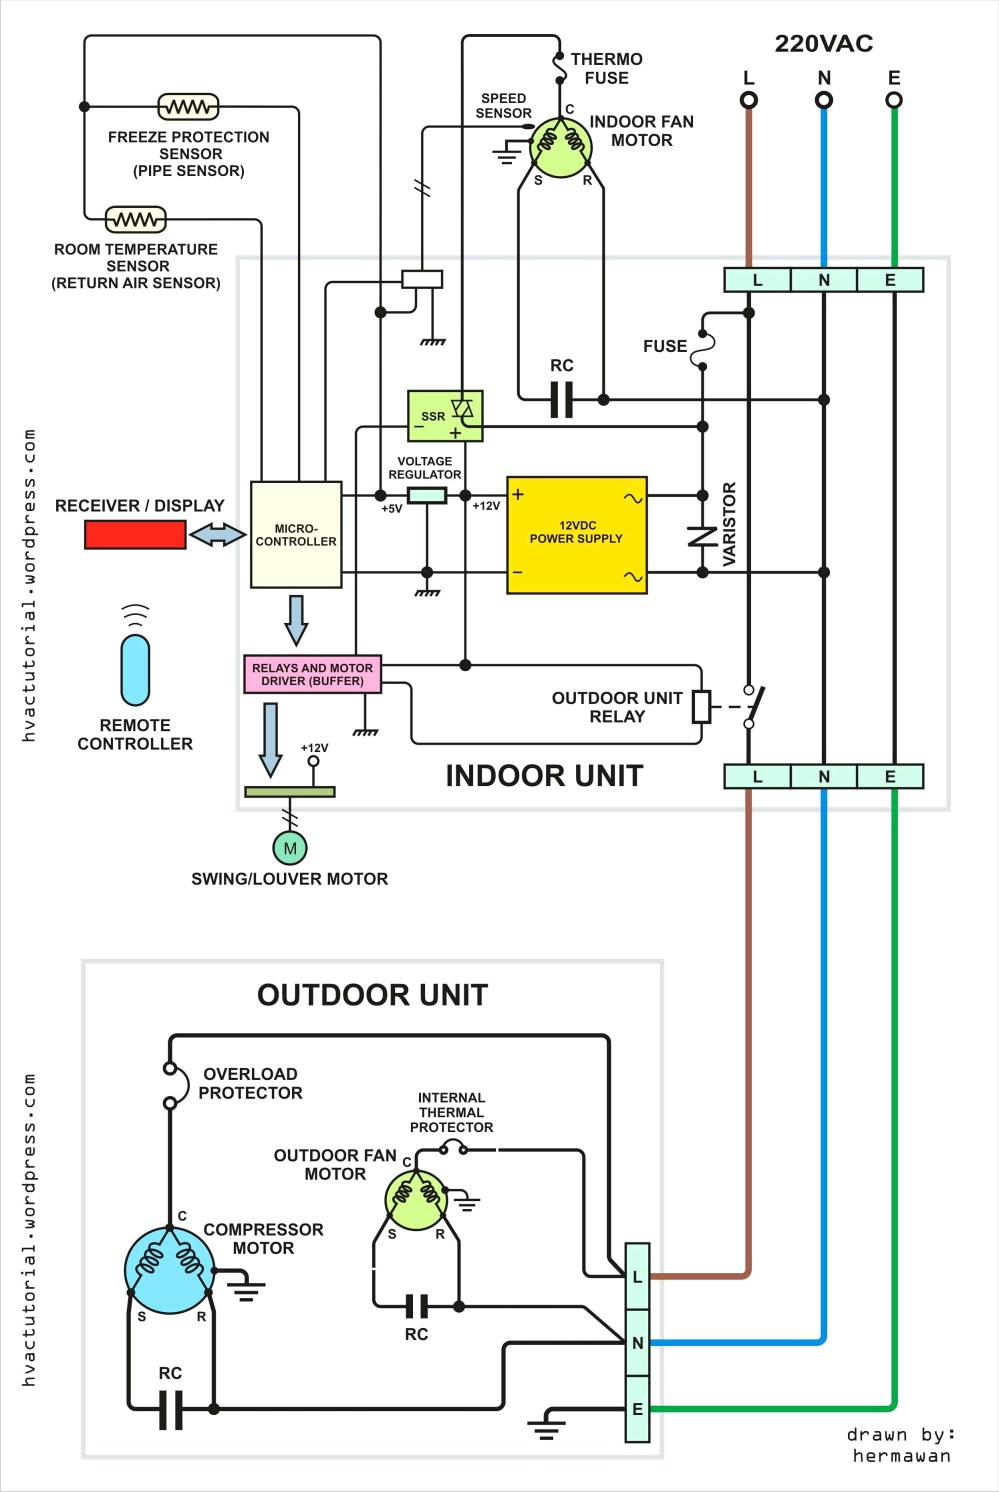 medium resolution of clark forklift ignition switch wiring diagram clark forklift ignition switch wiring diagram sample wiring diagram